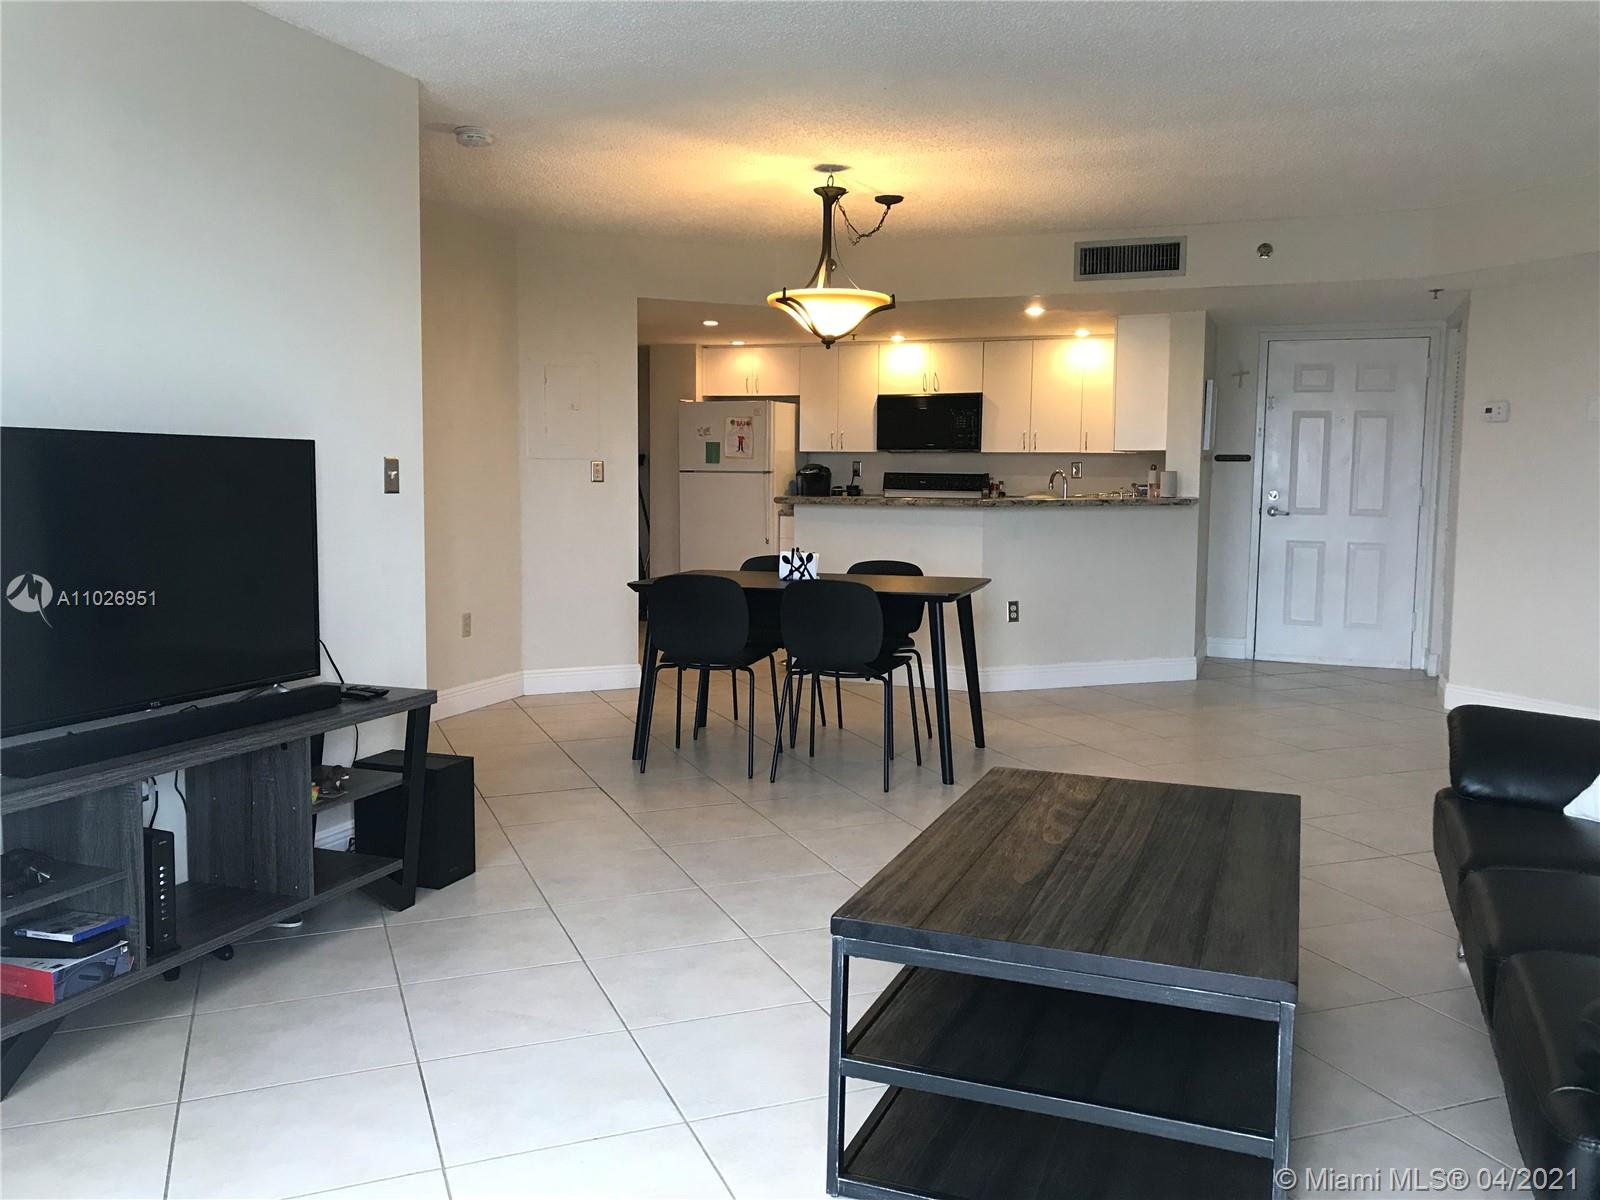 "GREAT LOCATION! 2/2 Corner unit on the 11th floor overlooking Beautiful Coral Gables - A block from ""Miracle Mile"". Split floorplan with walk in closet, open kitchen with granite counter top, washer / dryer in the unit and tile throughout. Pool with outdoor kitchen, Business Center, Club Room, Security, Front Door Attendant, assigned covered parking as well as guest parking. ***Schedule on Showing Time*** Tenant Occupied till 5/30/21***"